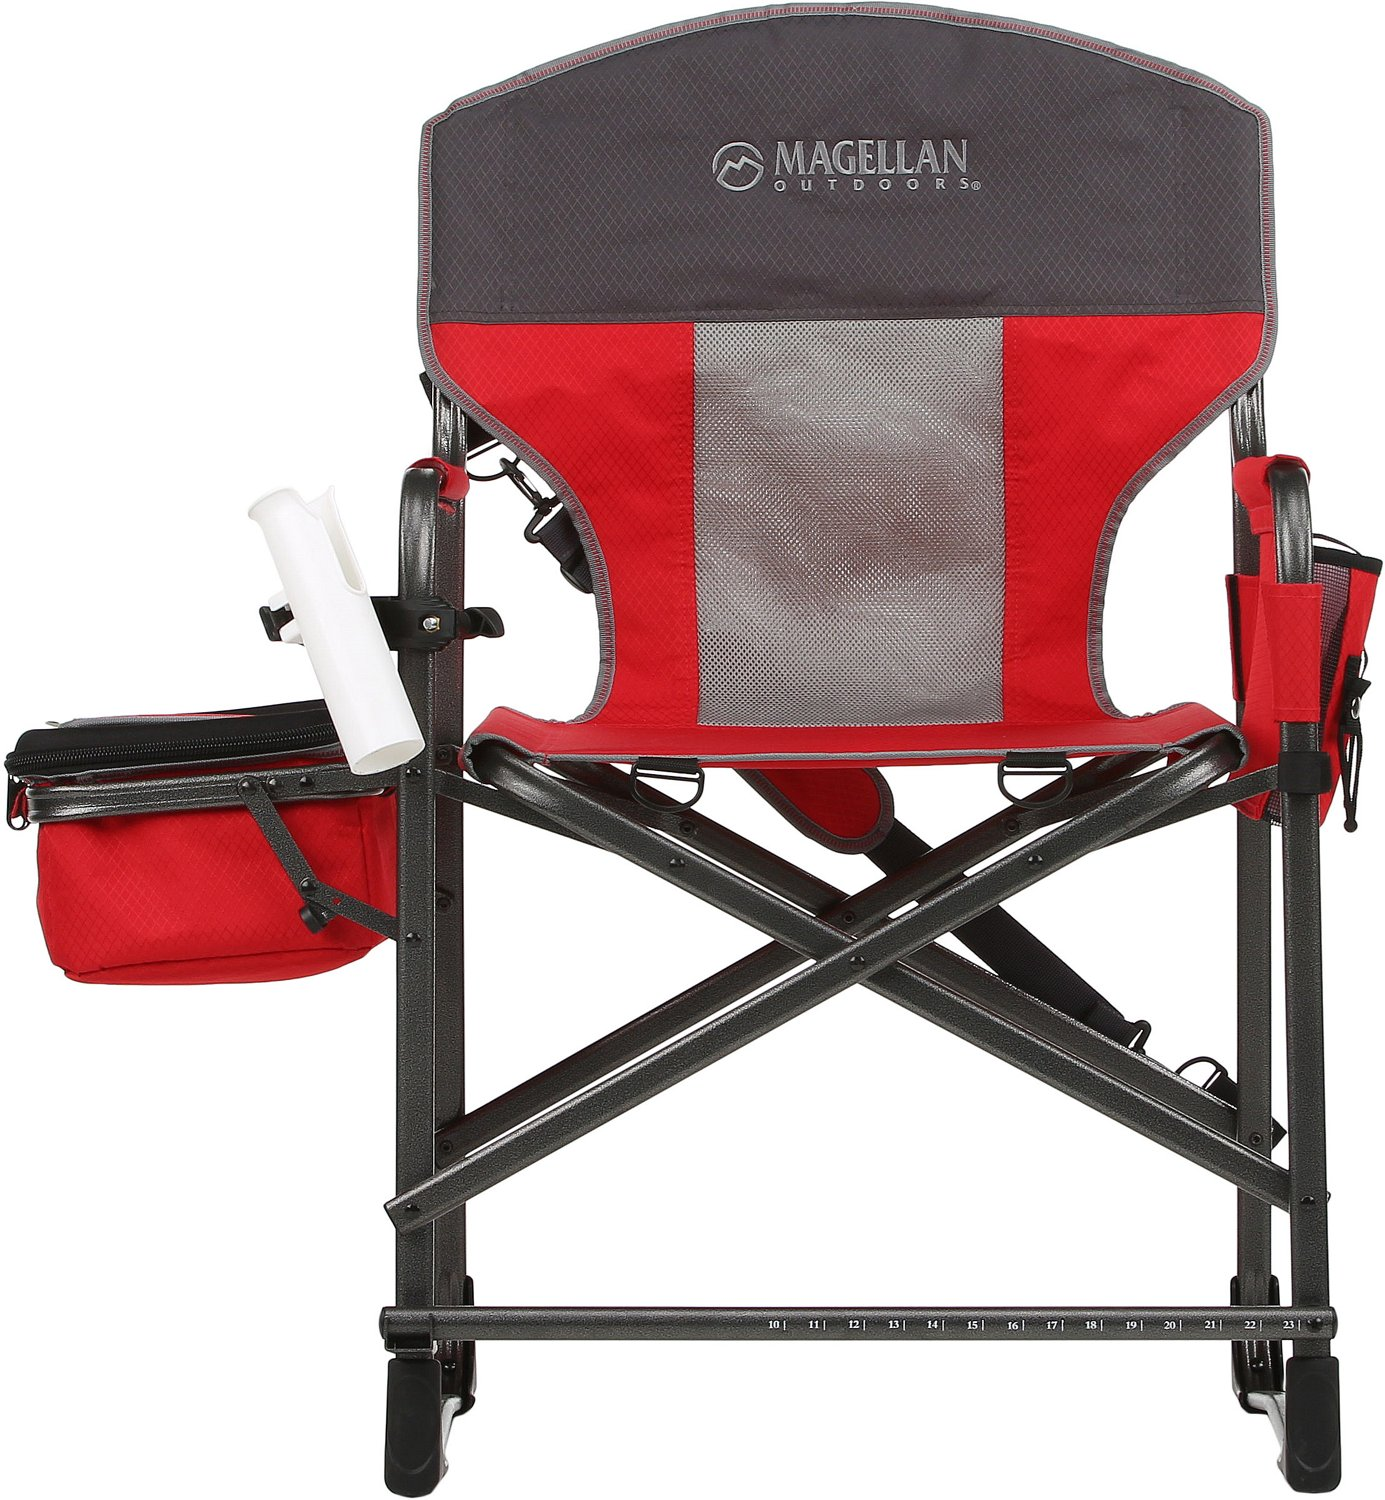 fishing chair bed reviews steve silver dining chairs folding plastic wooden fabric metal display product for magellan outdoors director s